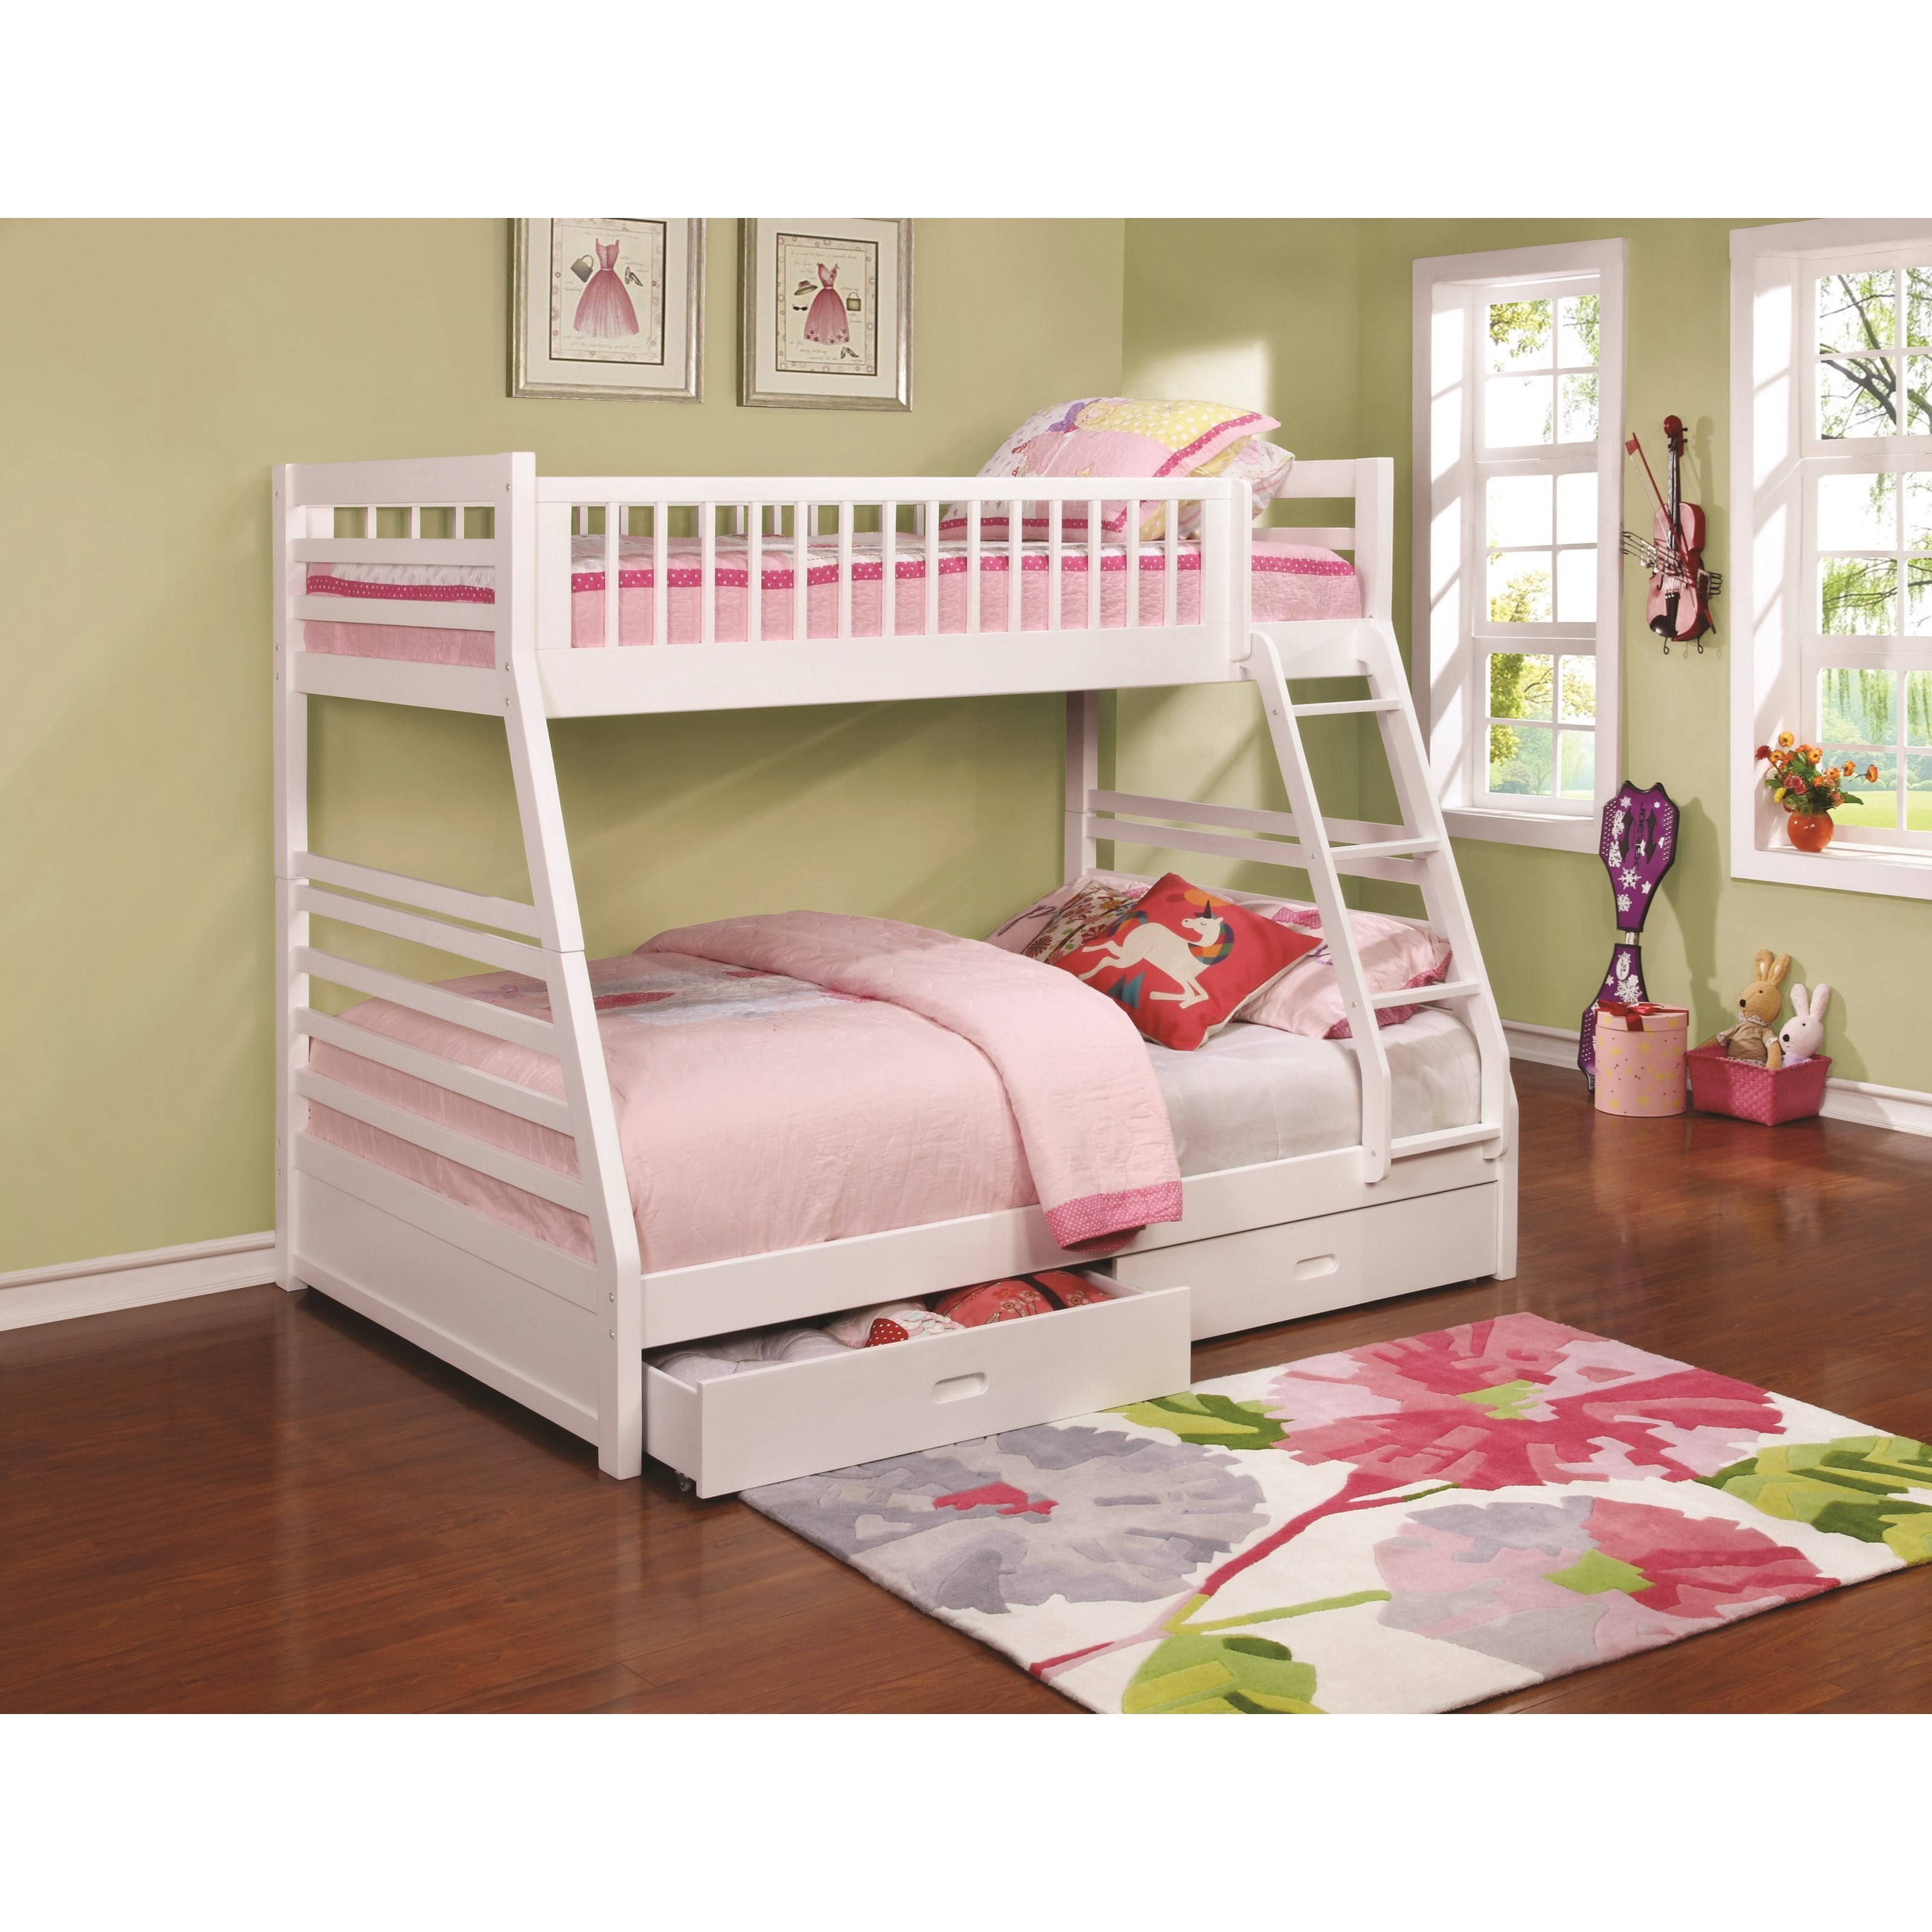 Bunks twin over full bunk bed with 2 drawers and attached ladder quality furniture at - Beds with desks attached ...